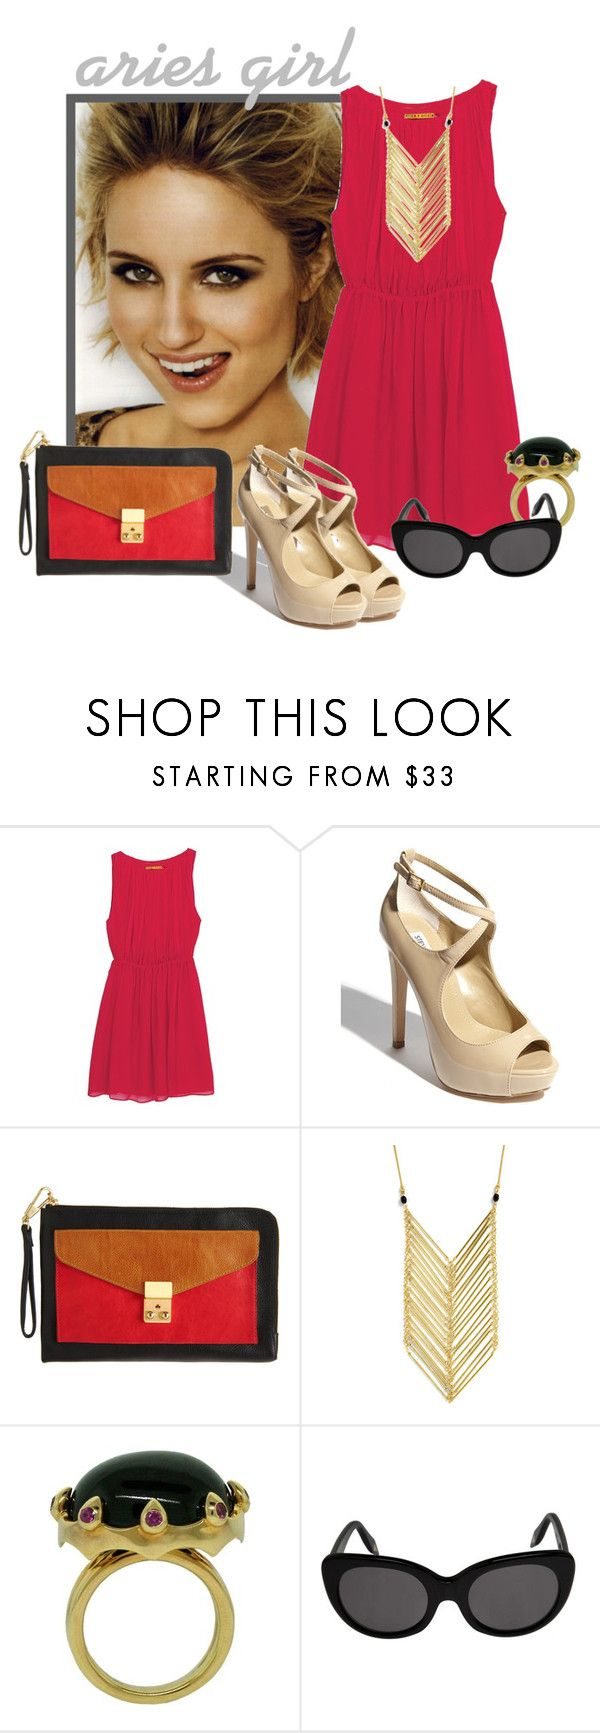 """""""Aries Girl"""" by shelliquinn ❤ liked on Polyvore featuring Alice + Olivia, Steve Madden, 3.1 Phillip Lim, Jayce Wong and Victoria Beckham"""